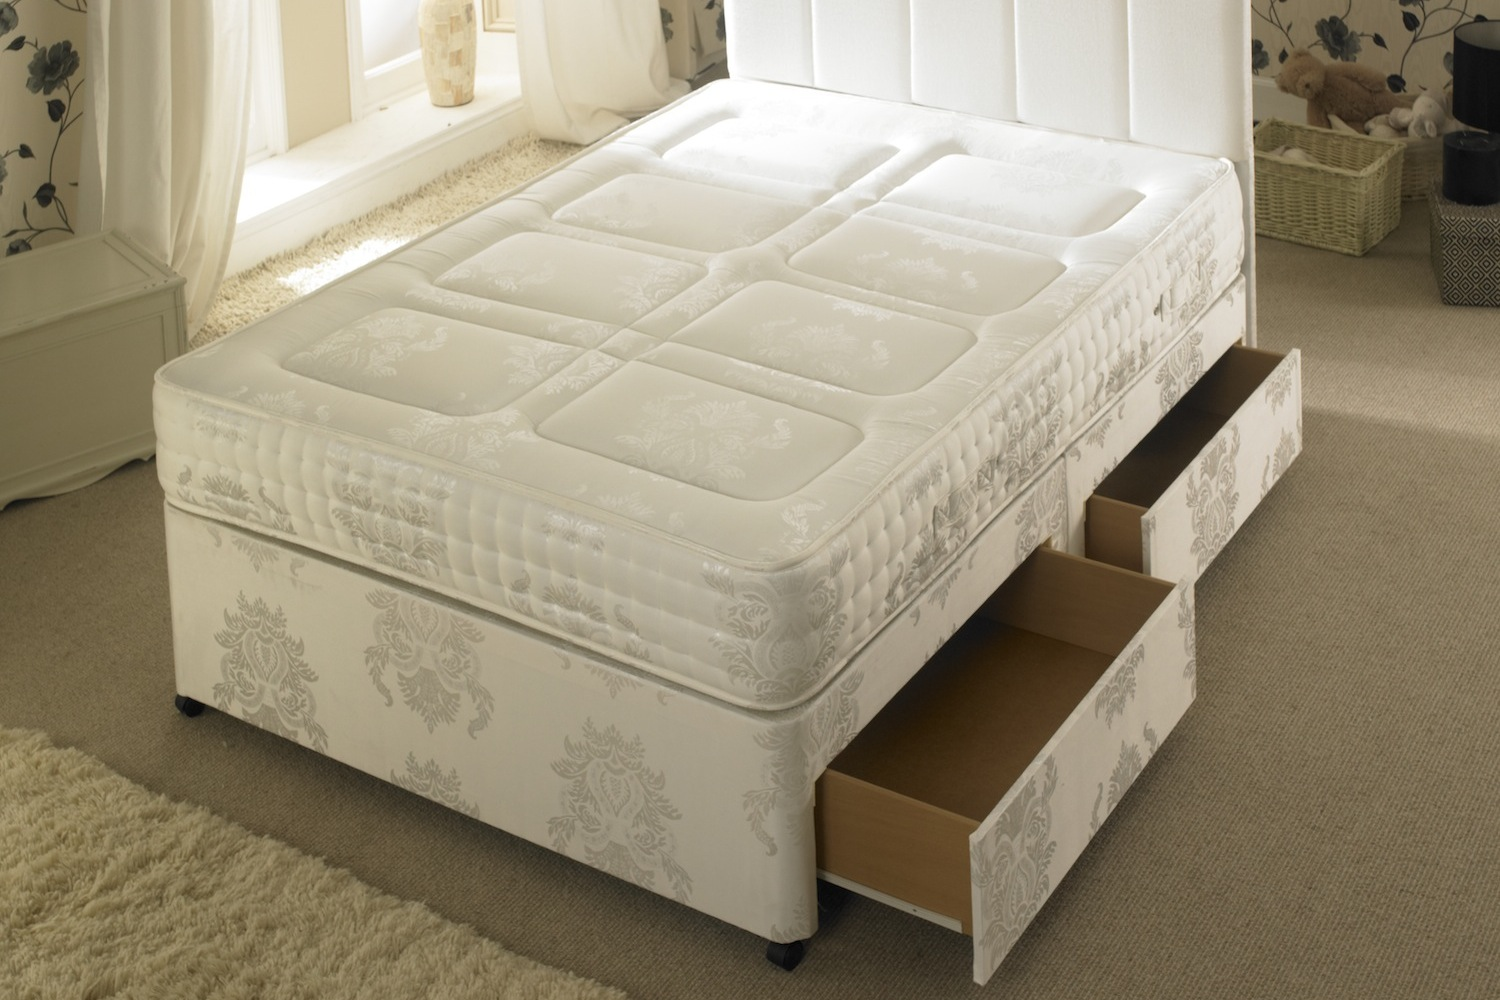 Joseph VIP Pocket Spring Series 2000 Quilted Divan Bed-Super King Size-2+2 Drawers